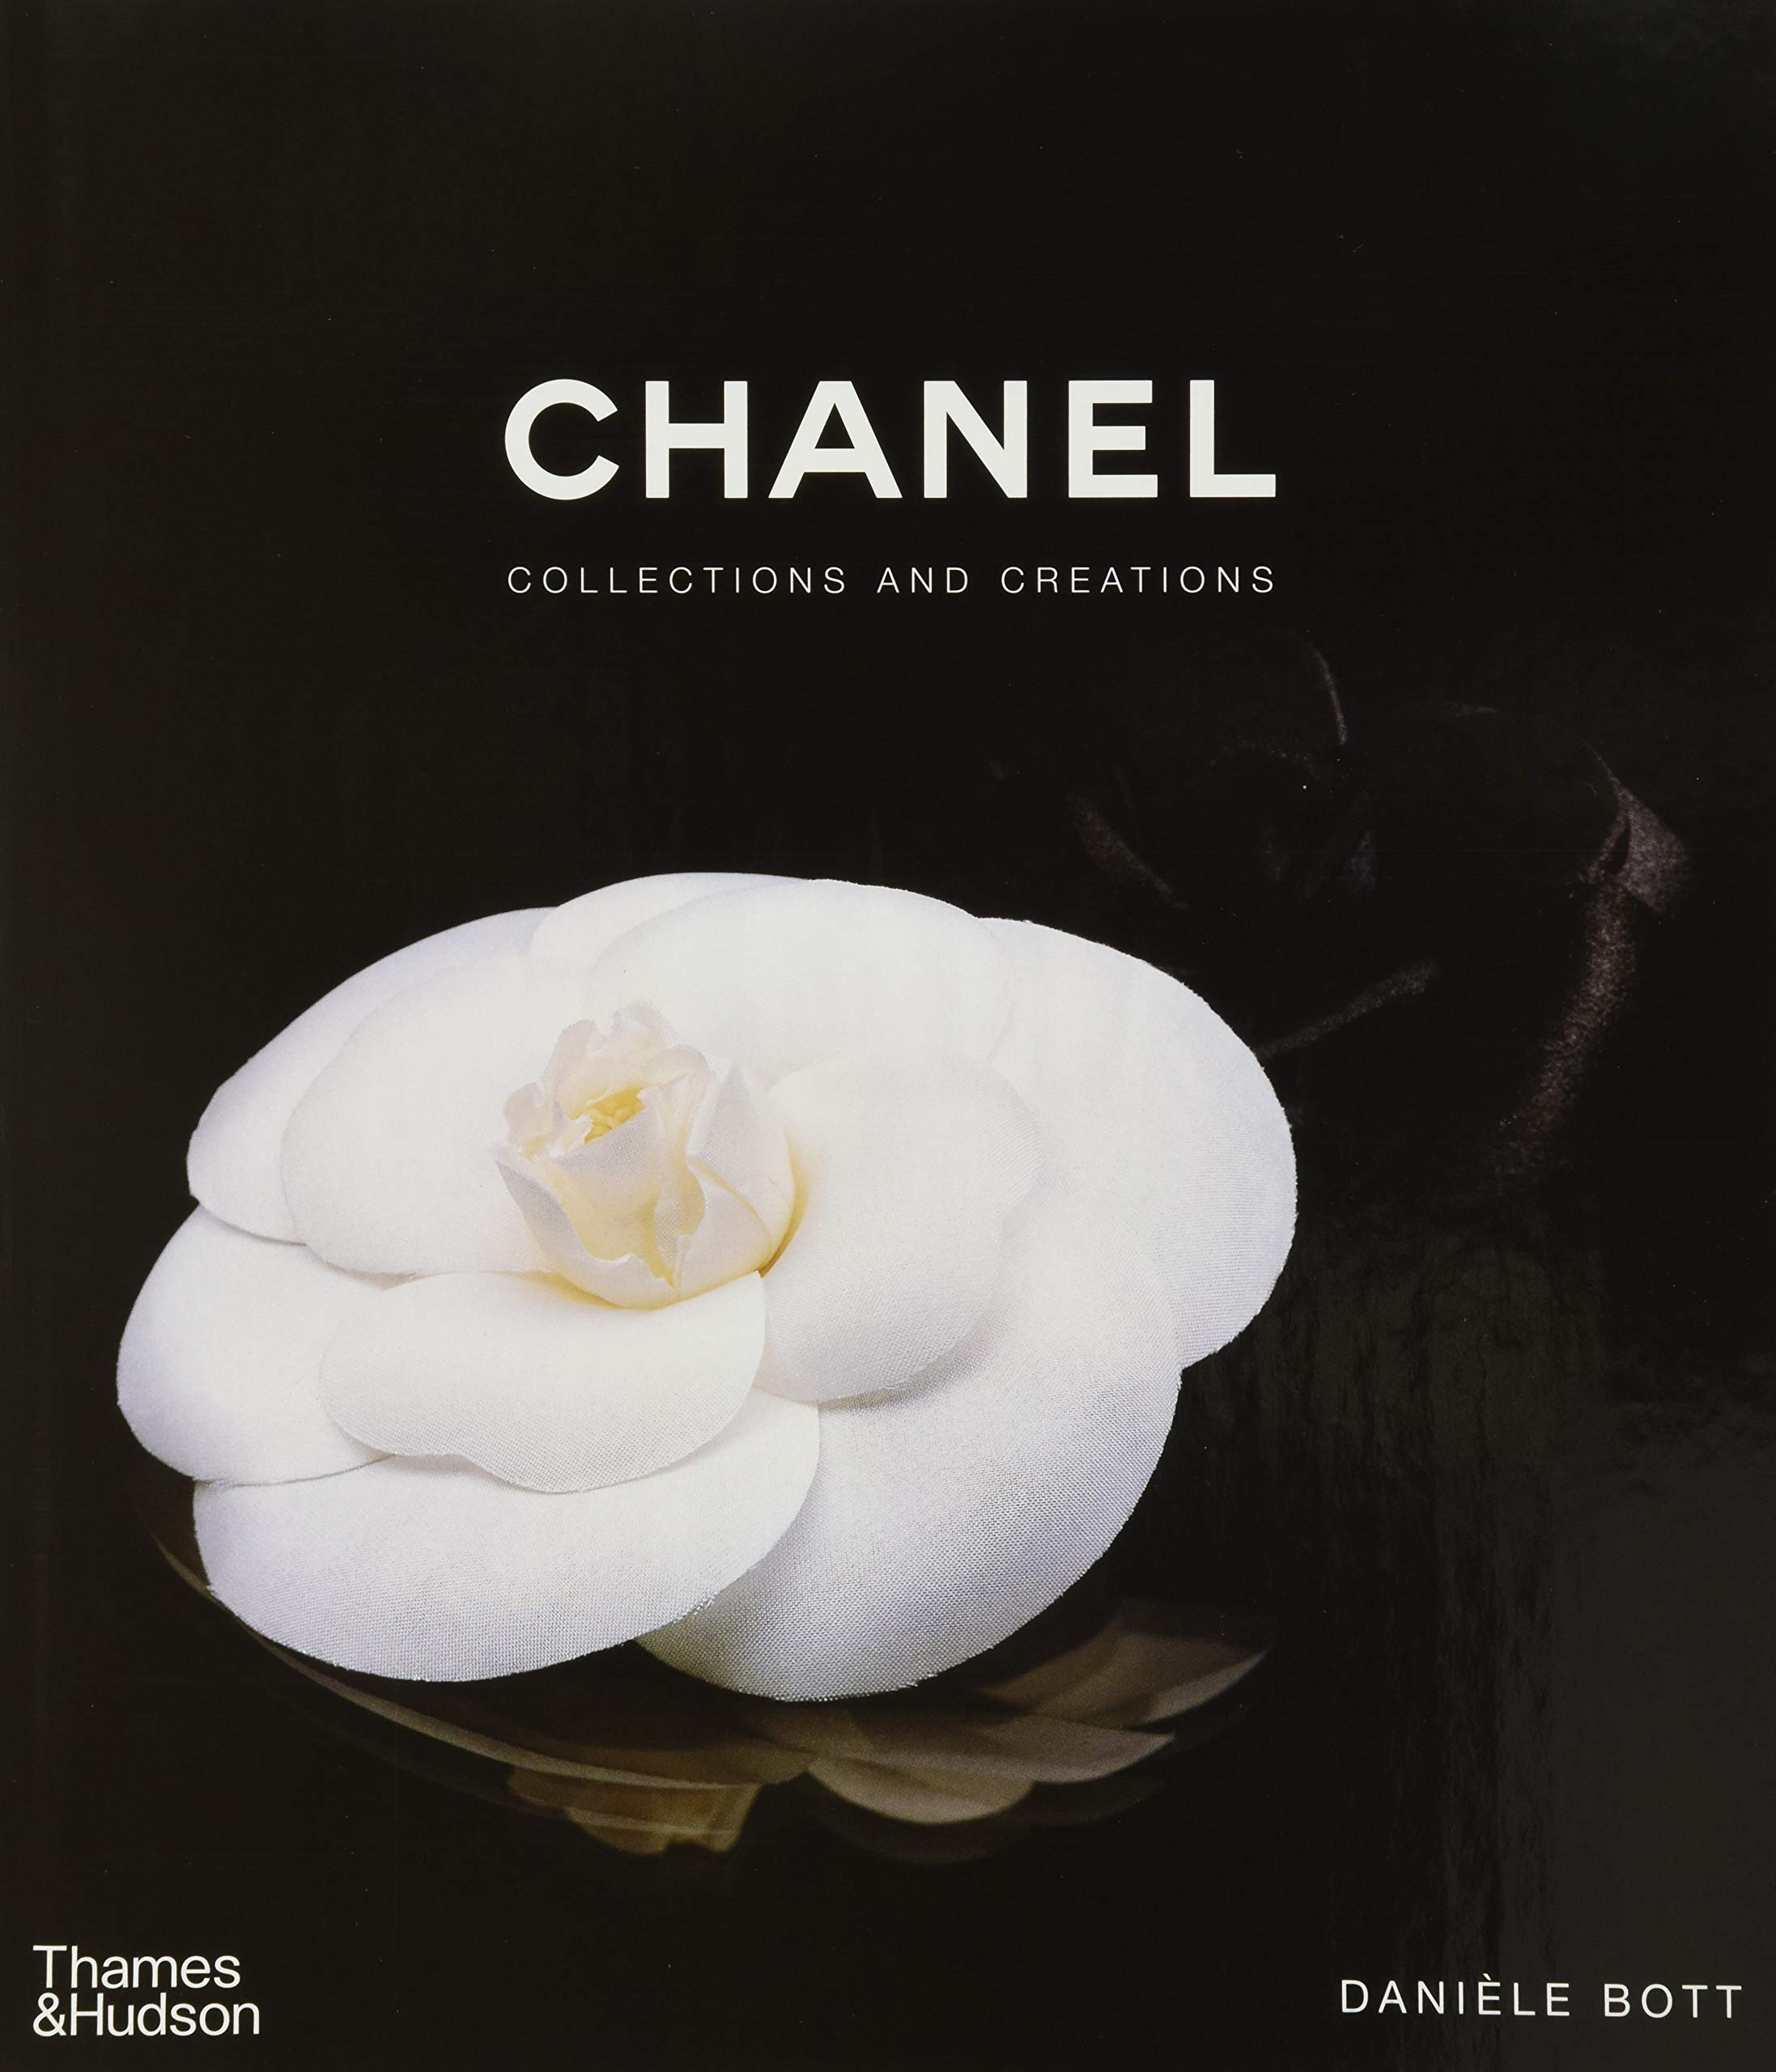 Chanel: Collections and Creations WeeklyReviewer